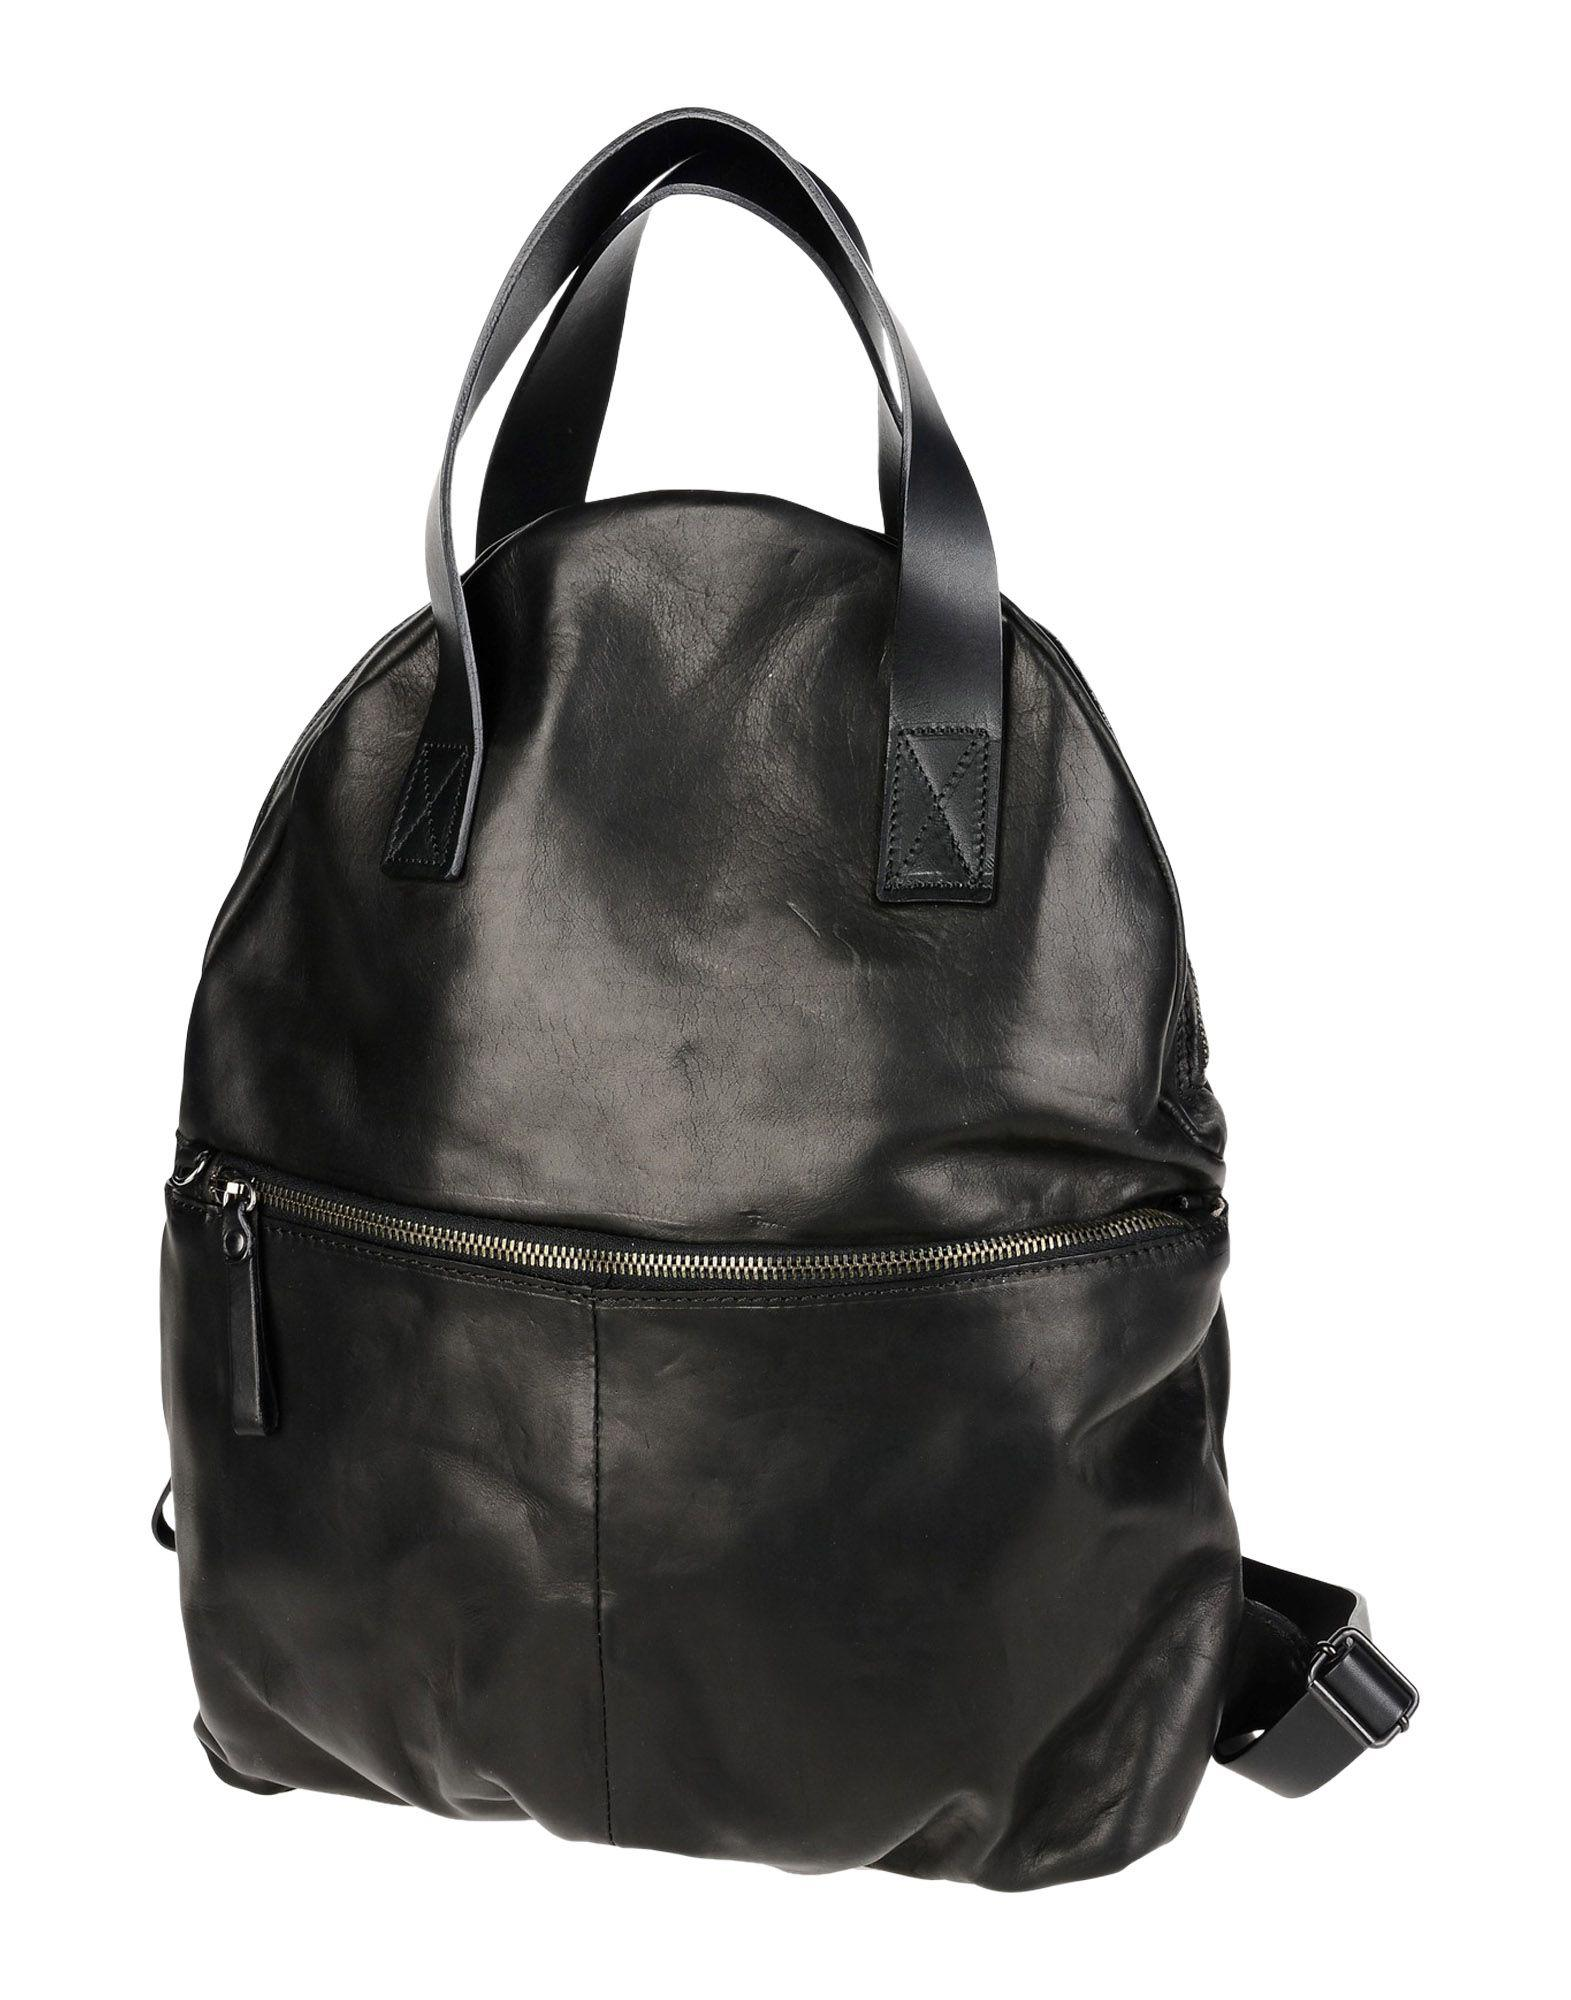 HANDBAGS - Backpacks & Fanny packs L'autre Chose For Sale Cheap Price From China Cheap Sale Low Shipping High Quality Online mjSOKhGXQh